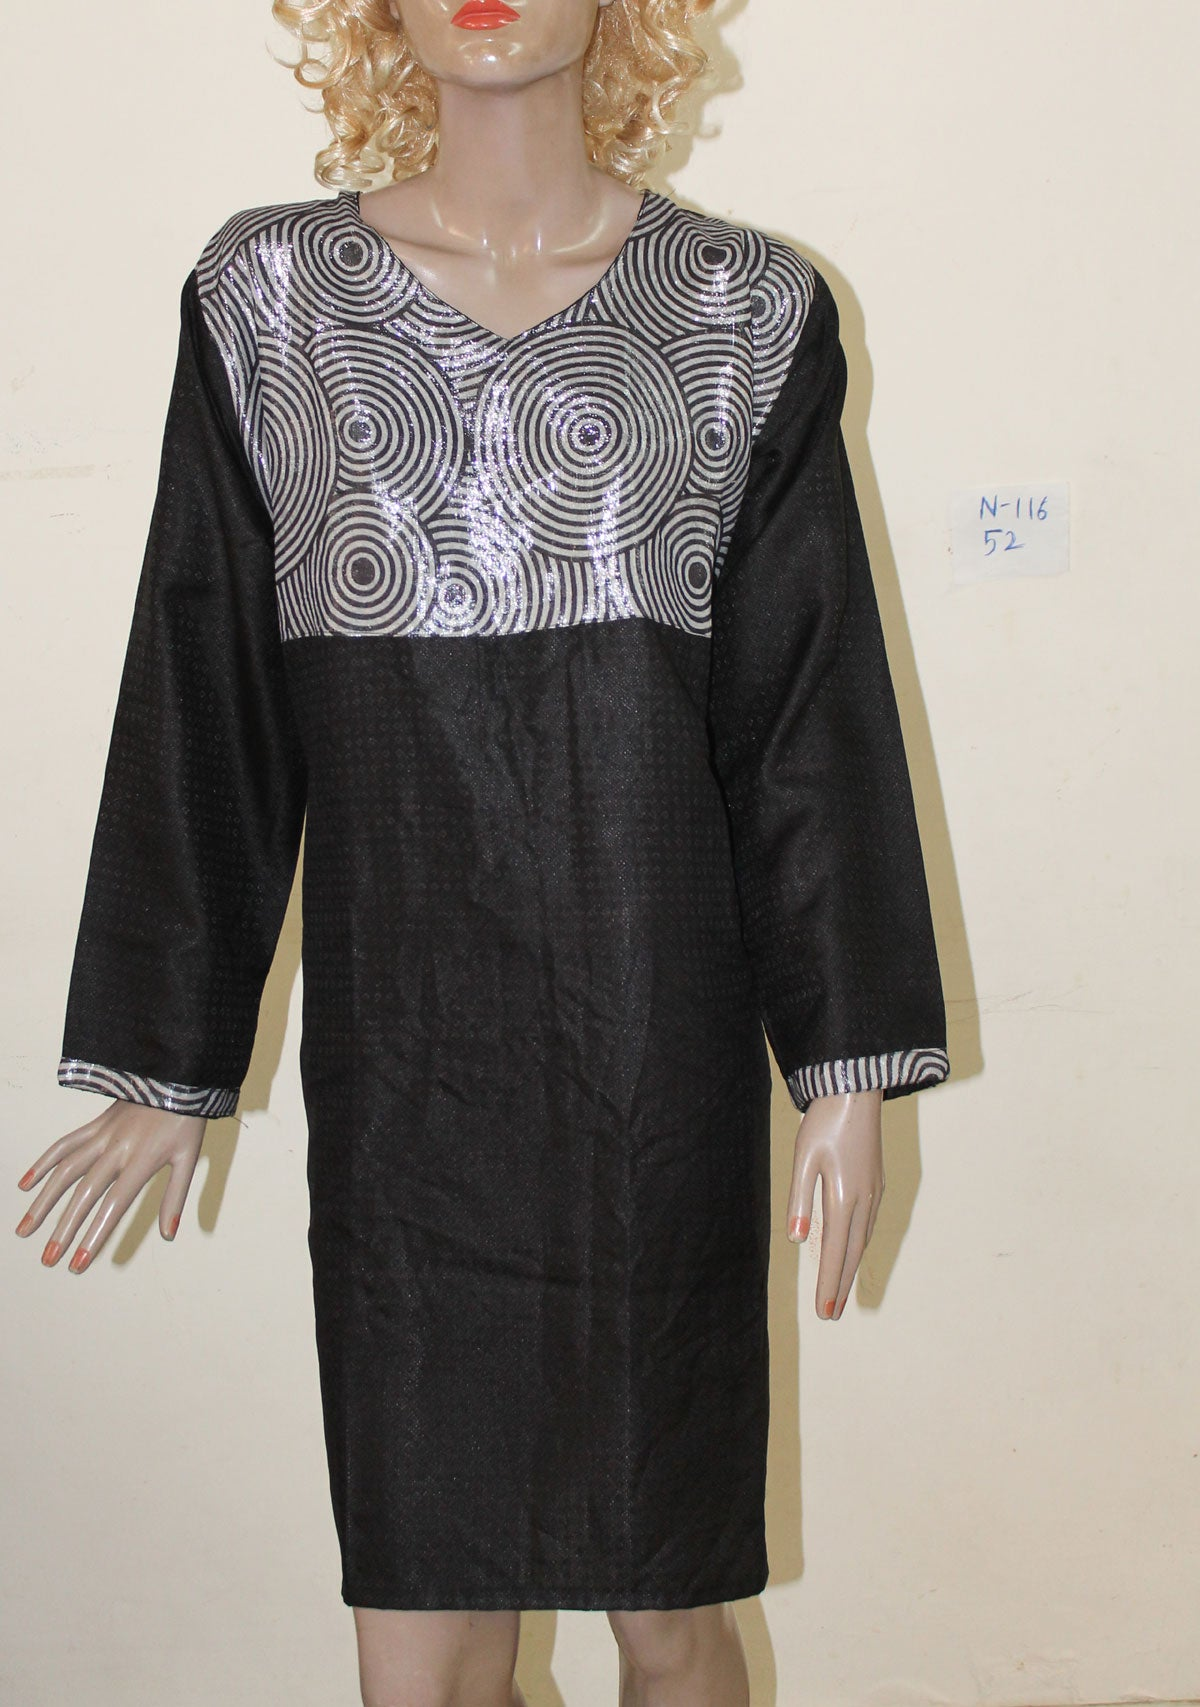 Black N116 Jacquard Indian Clothing Women Kurta Tunic Dress Free Dupatta Plus Size 52